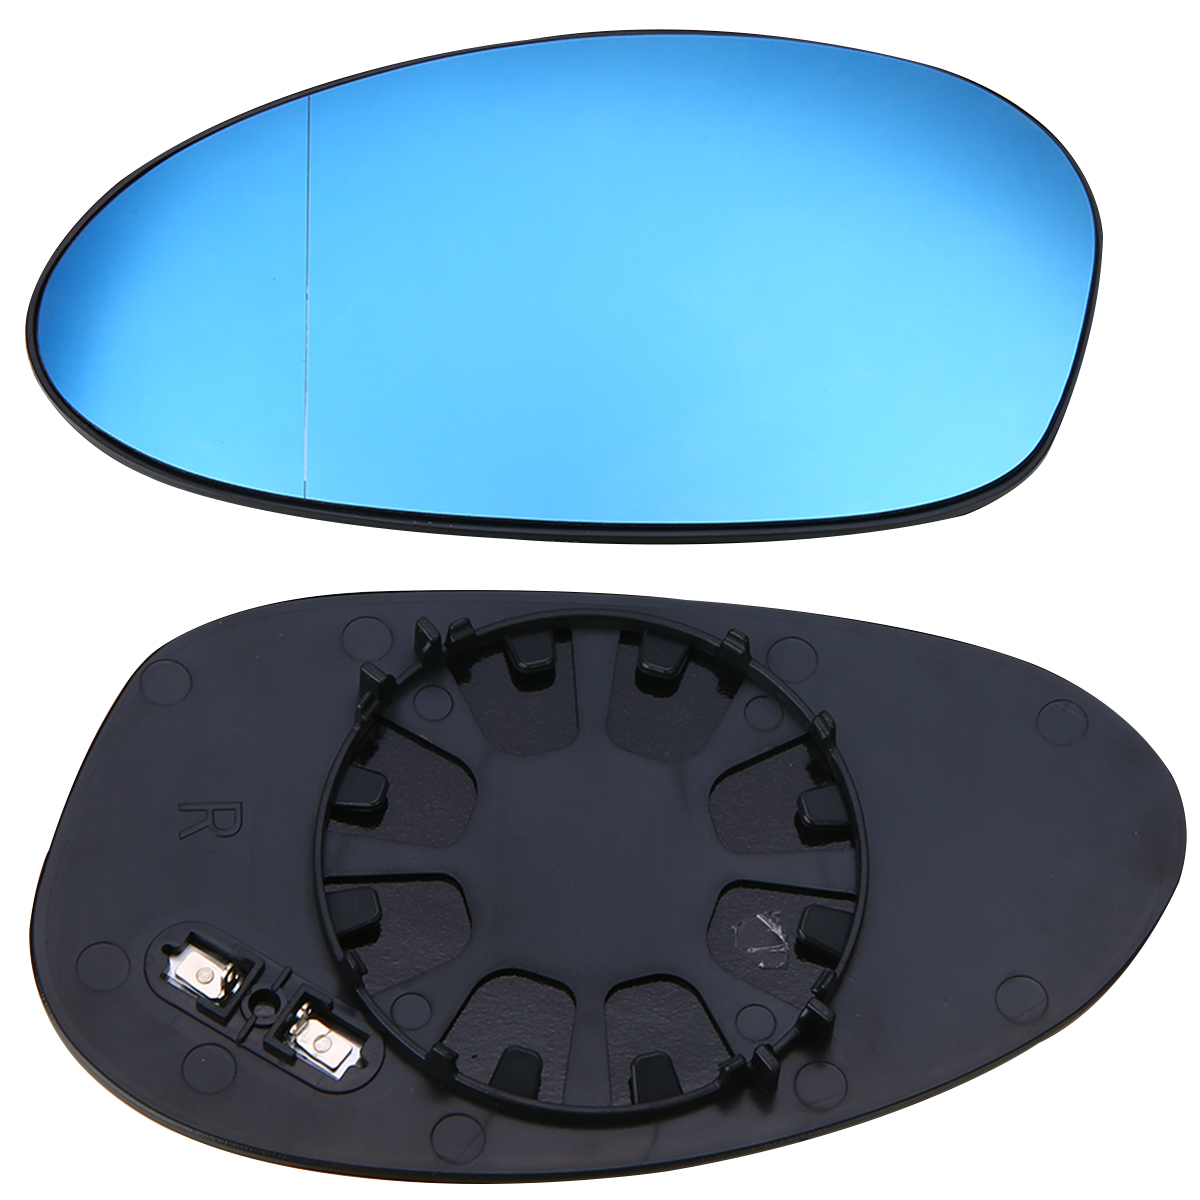 1Pair Door Mirror Glass Heated Blue Glass Wide Angle Aspherical Universal For BMW 3-Series E82 E90 E91 E92 E46